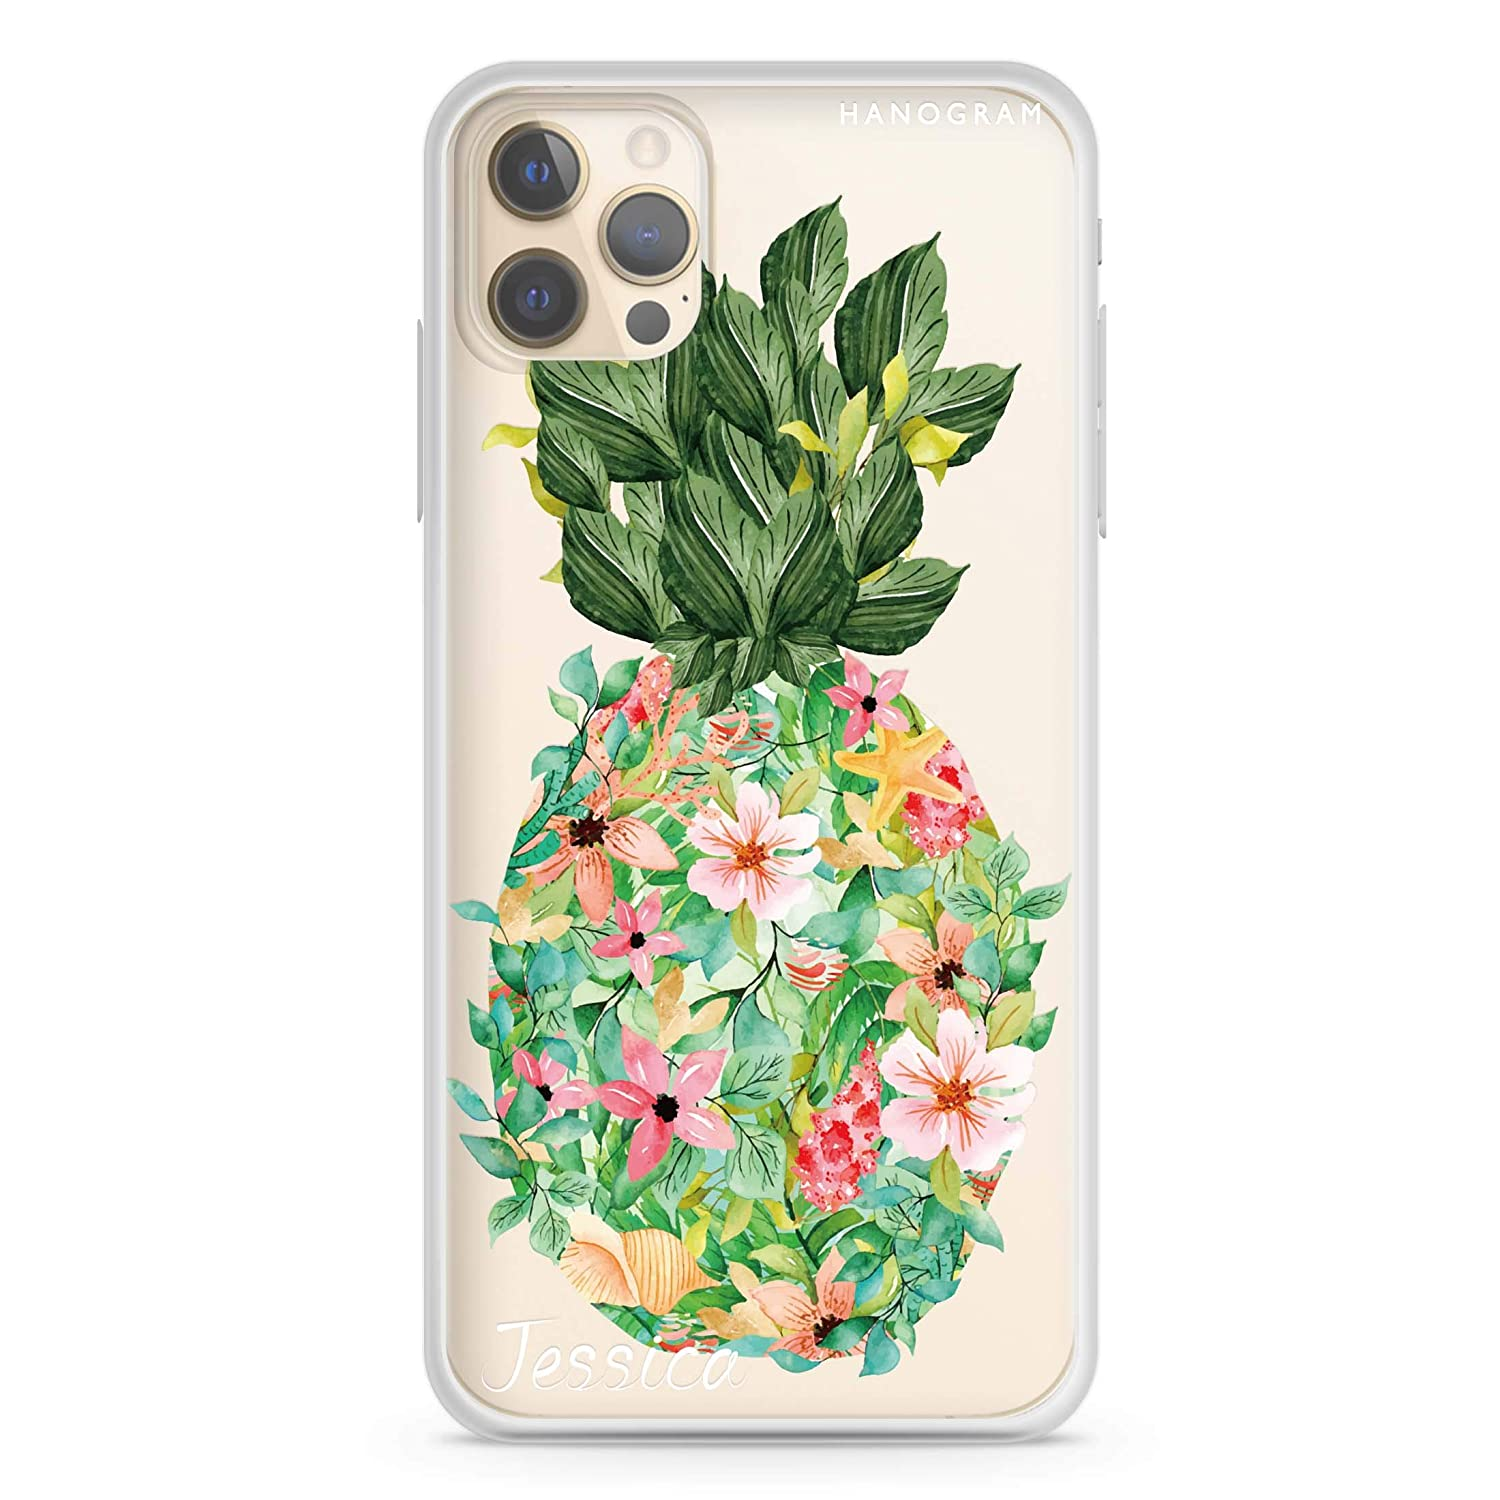 Floral Pineapple iPhone 12 Outstanding Pro i Max Case Soft Clear 40% OFF Cheap Sale